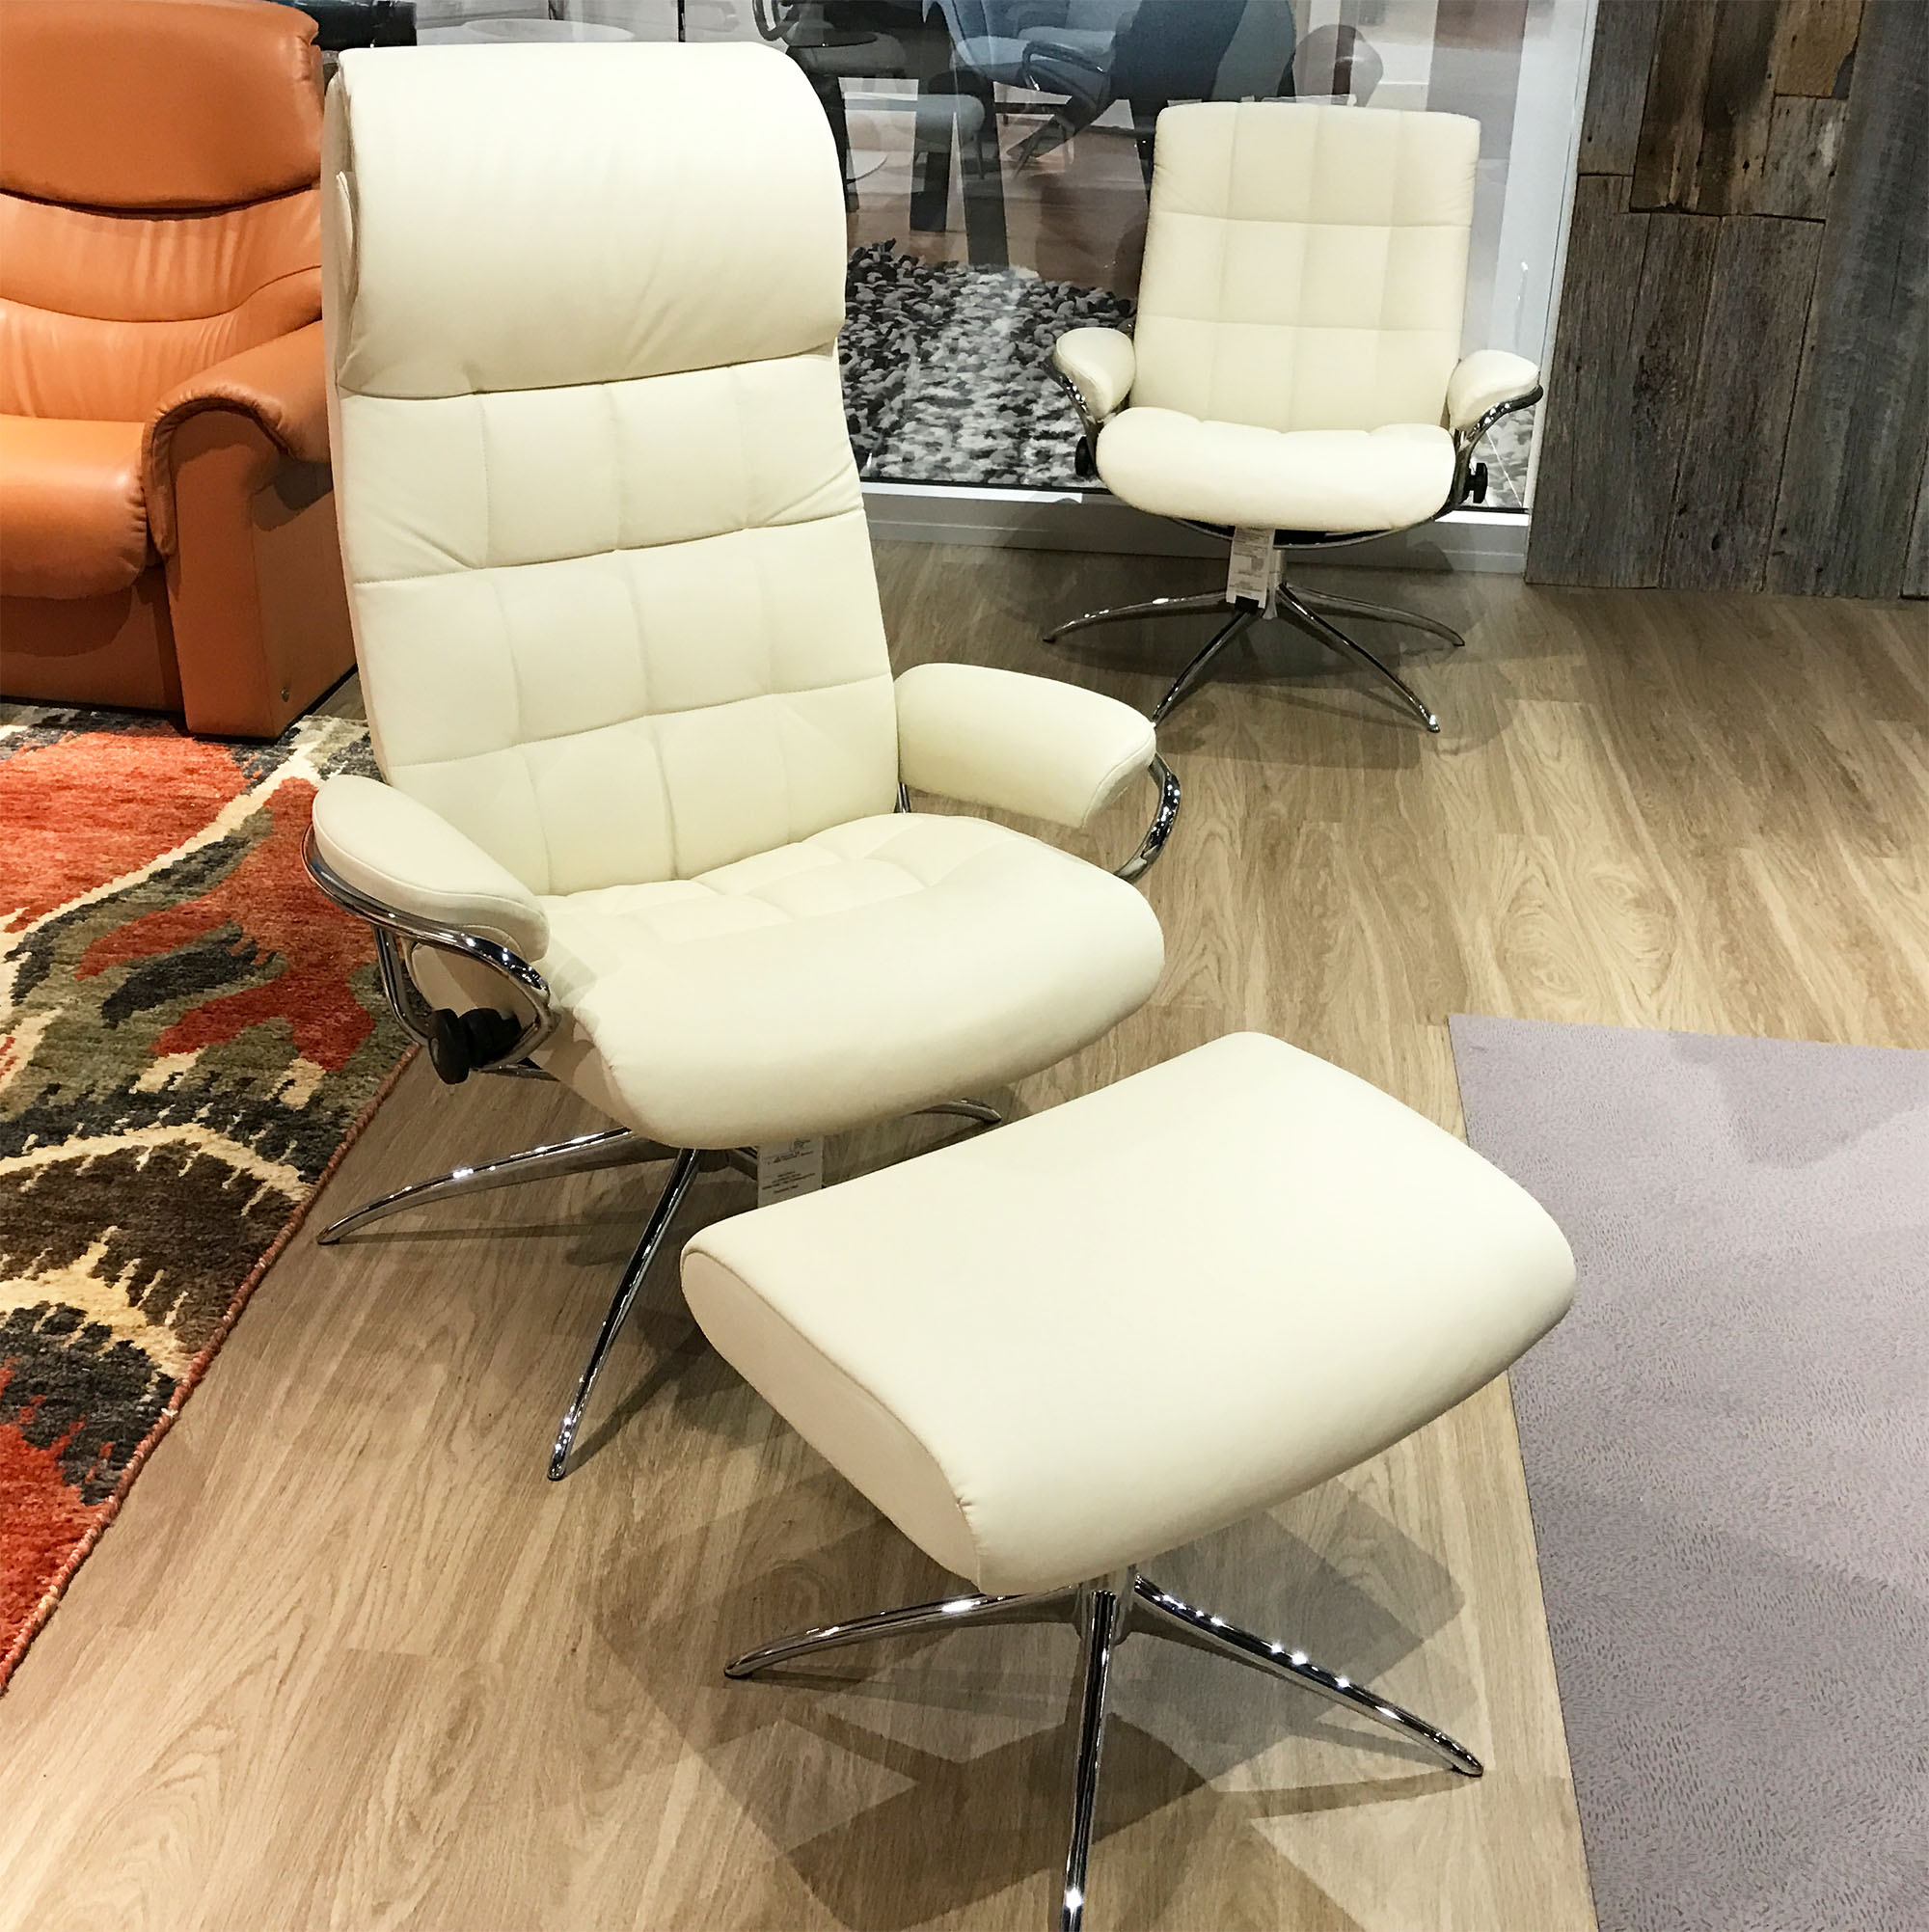 Groovy Stressless London High Back Recliner Chair And Ottoman In Paloma Vanilla White Leather By Ekornes Machost Co Dining Chair Design Ideas Machostcouk